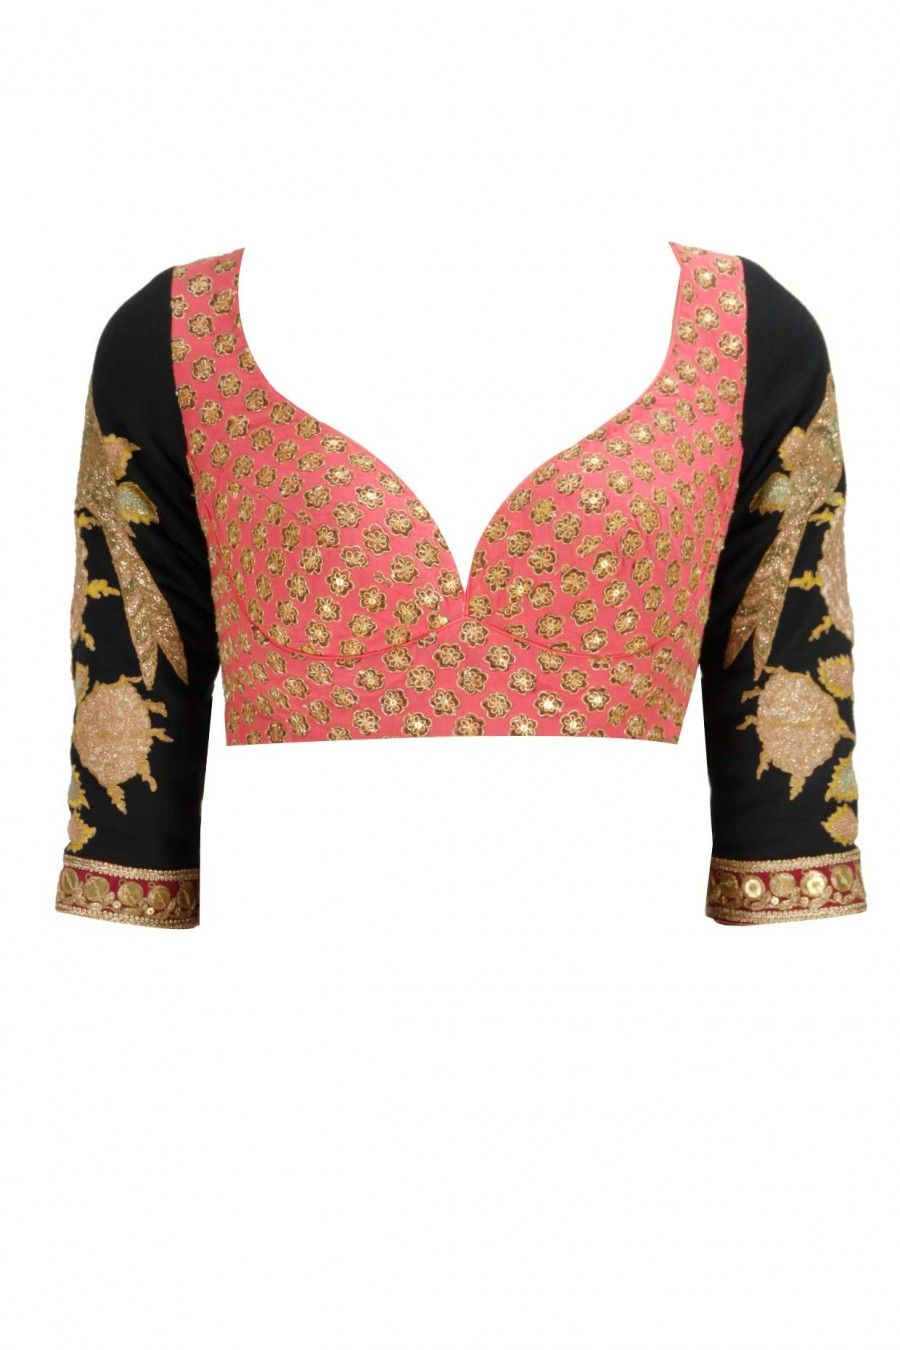 a5bd5c1270e Amazing hand work blouse in silk. Black was never so pretty. To get this  made to measure and in your favourite colors visit www.faaya.in now!